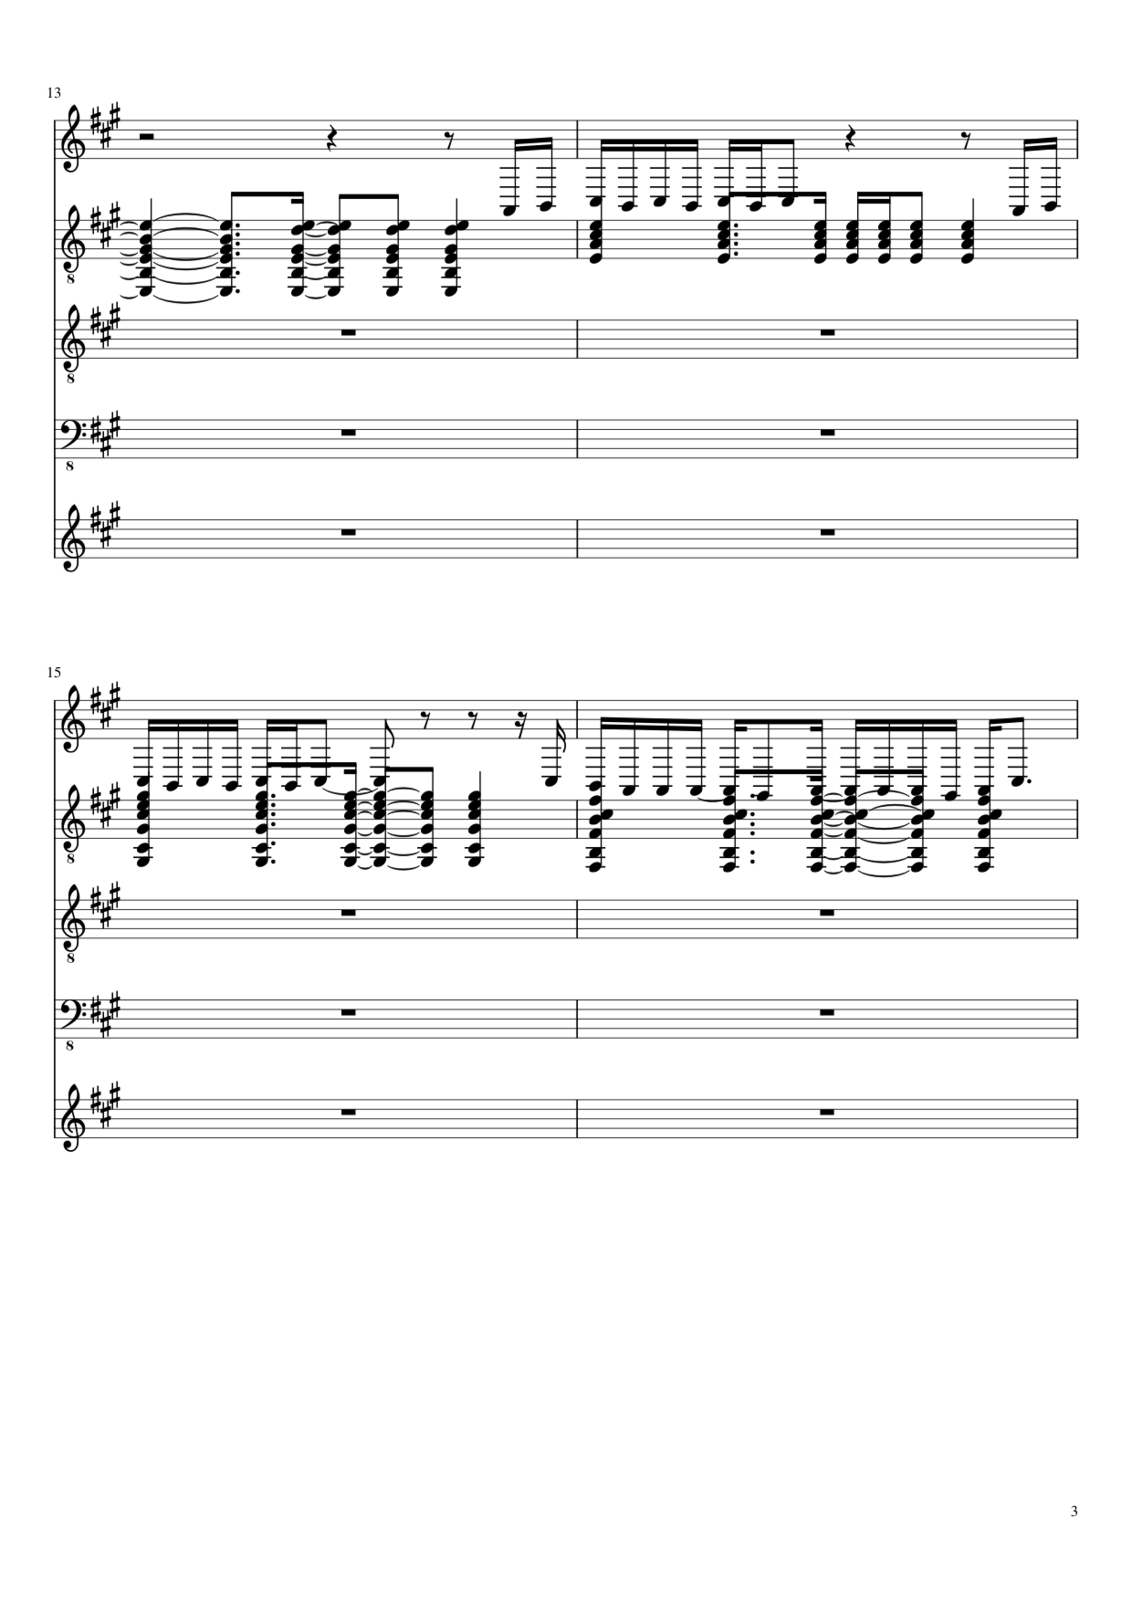 Vasco Rossi Midi Free Sheet Music Senza Parole By Vasco Rossi Play And Download